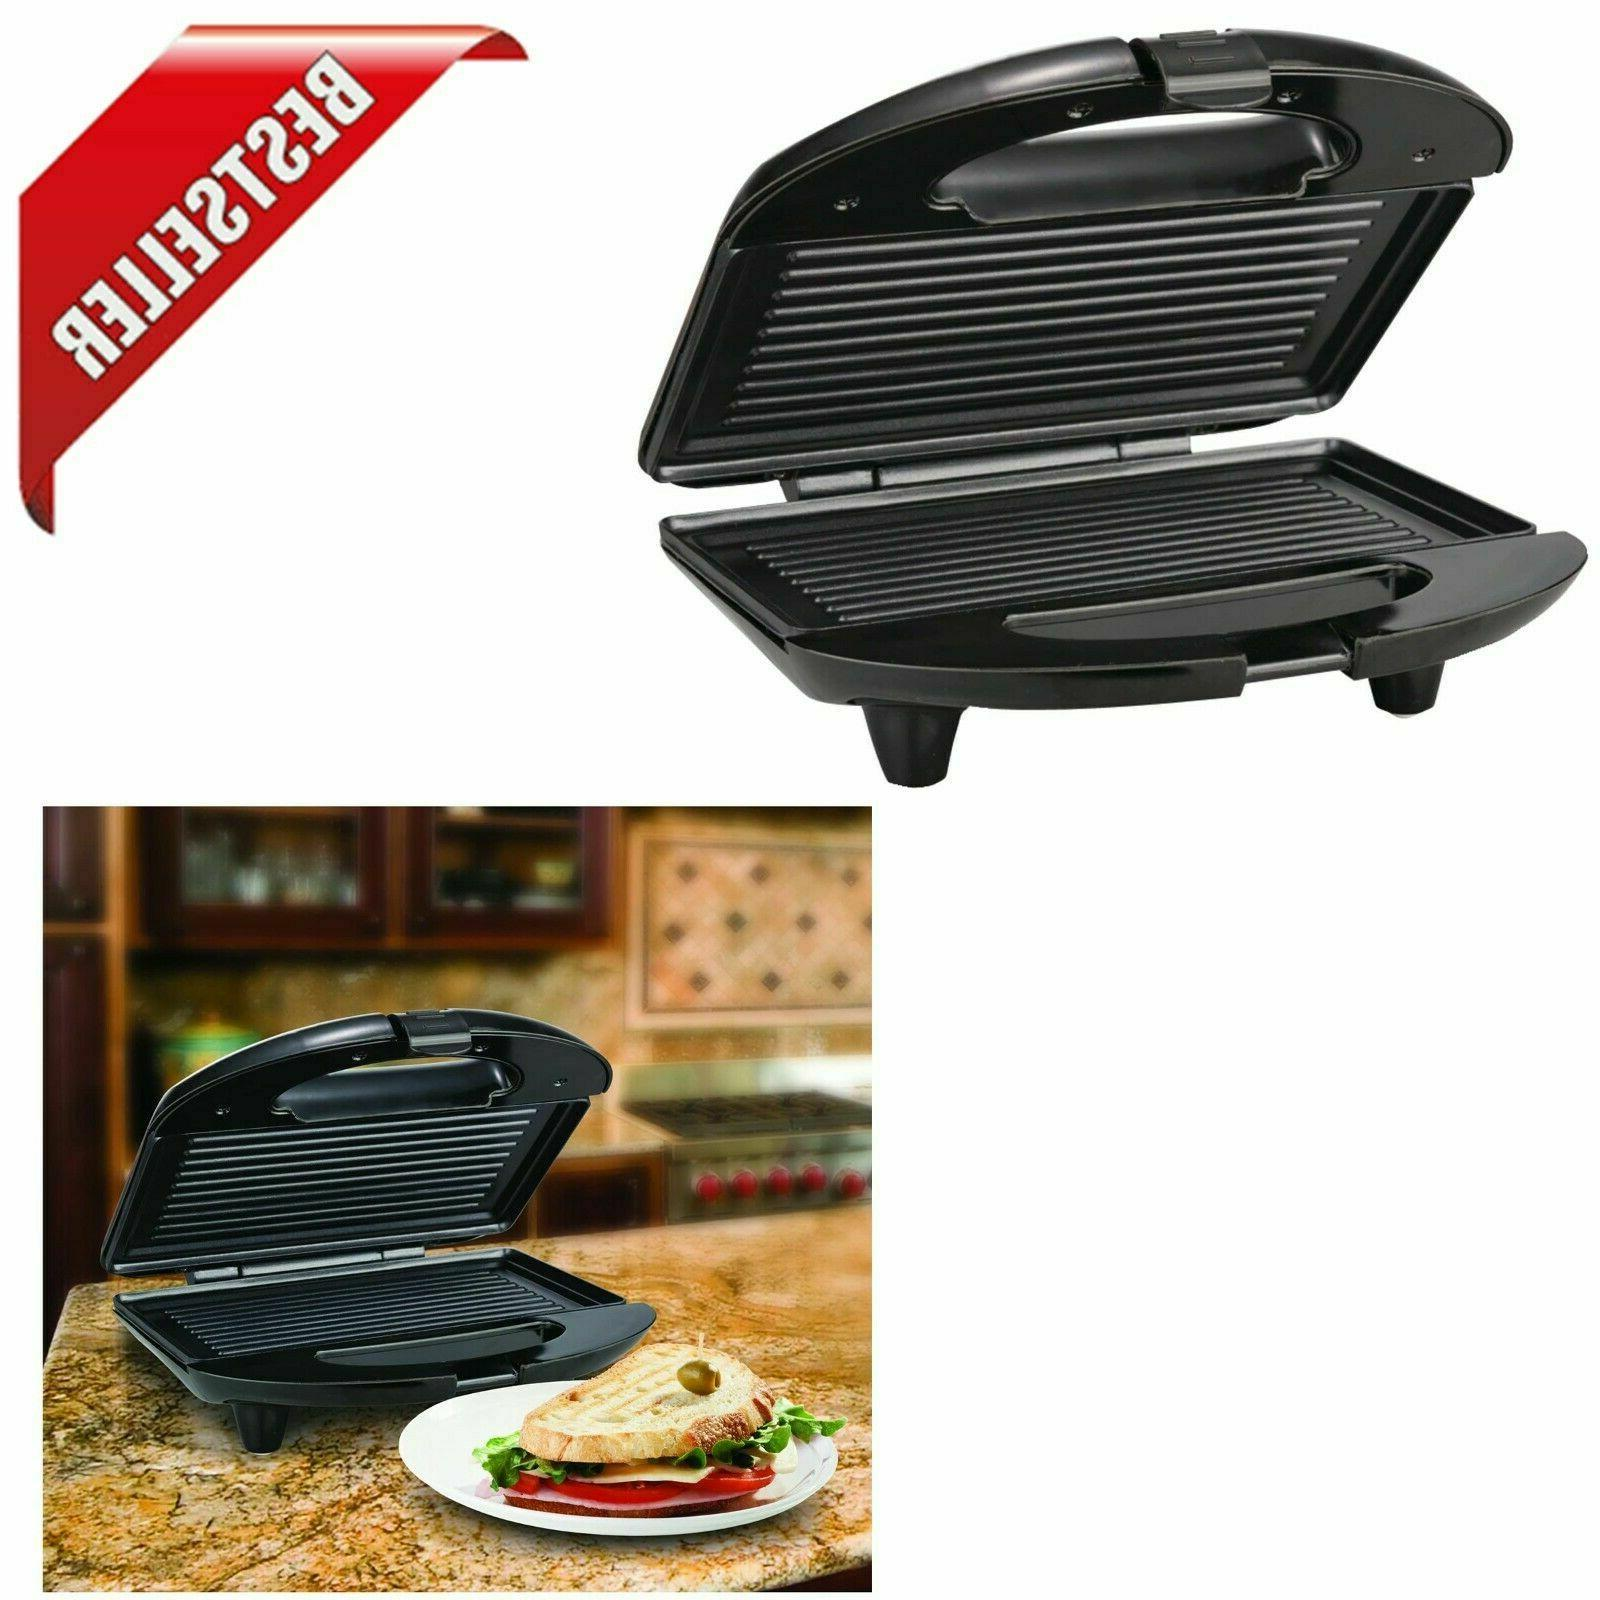 brentwood panini press and sandwich maker non